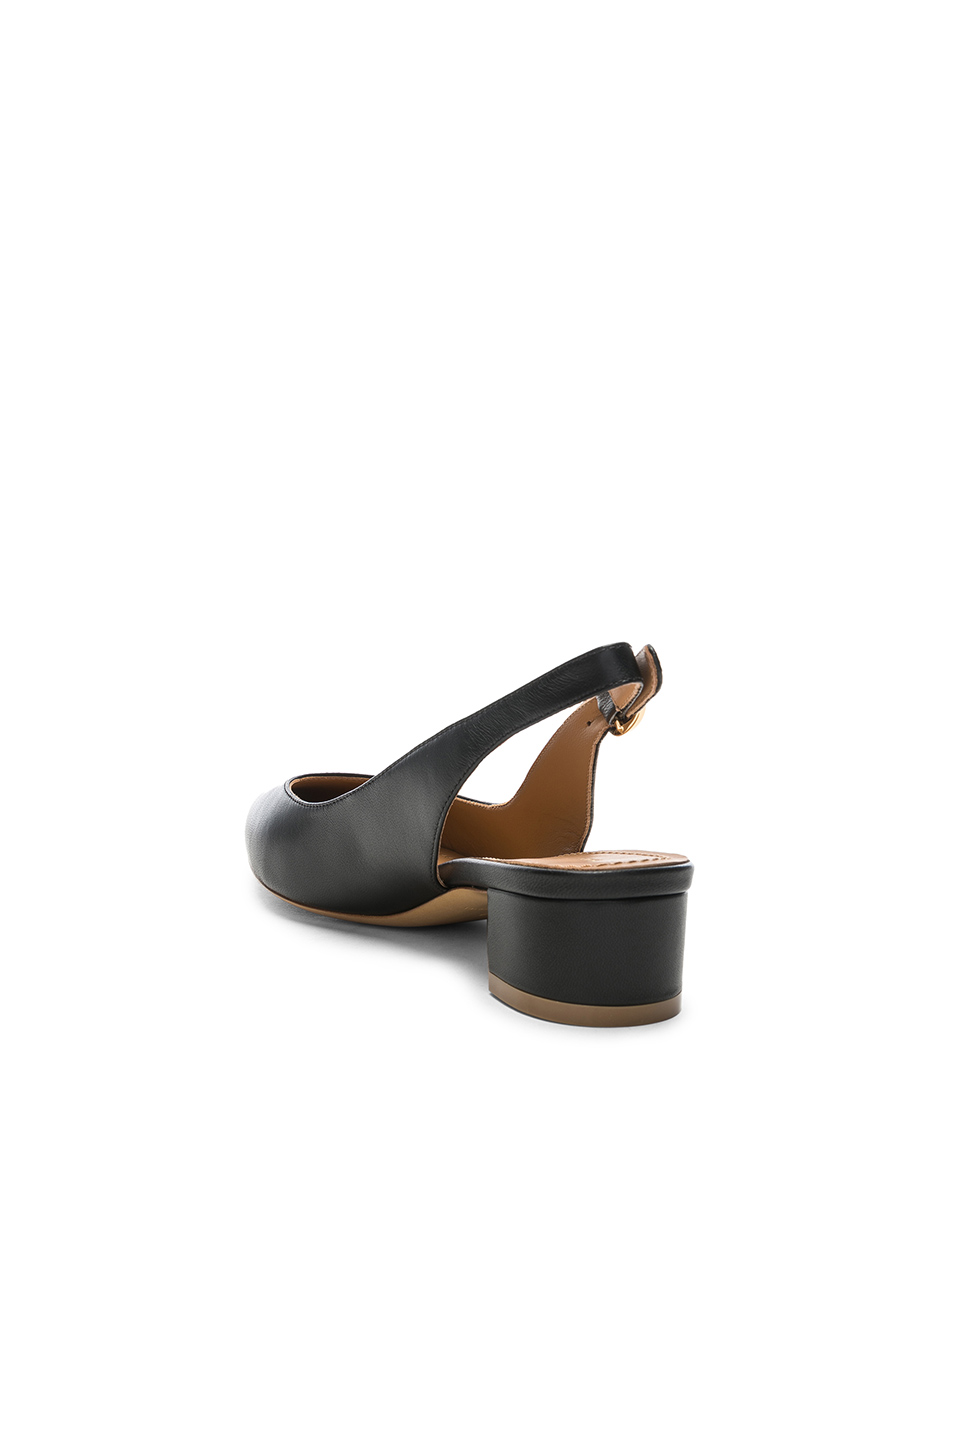 c0d4dbb93 Buy Original Mansur Gavriel Lamb Slingback Heel at Indonesia ...